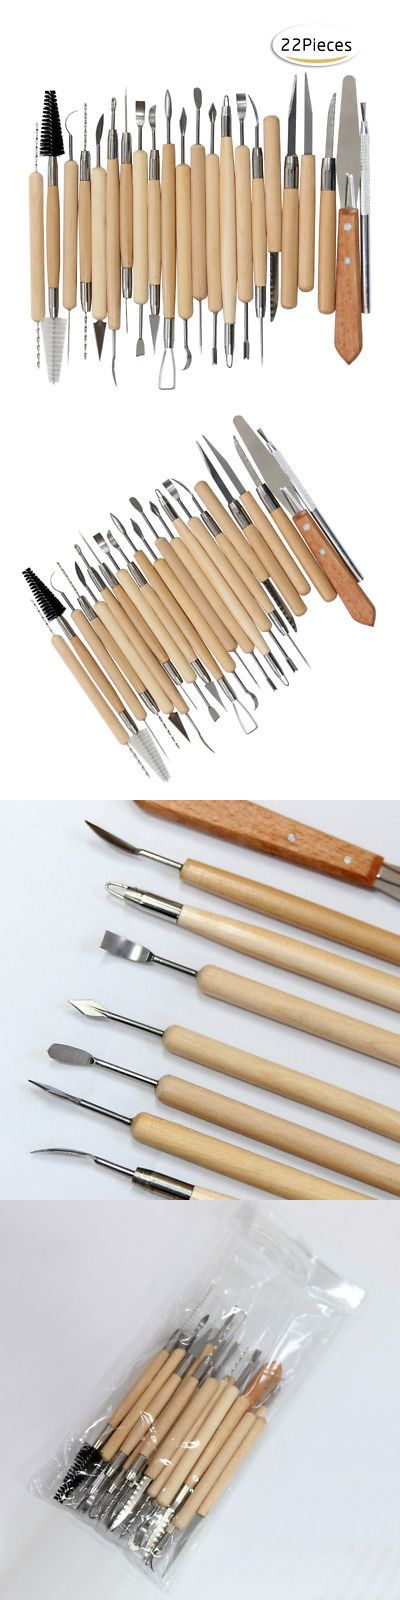 22pcs Set Tools Clay Sculpting Set Wax Carving Pottery Shapers Polymer Modeling